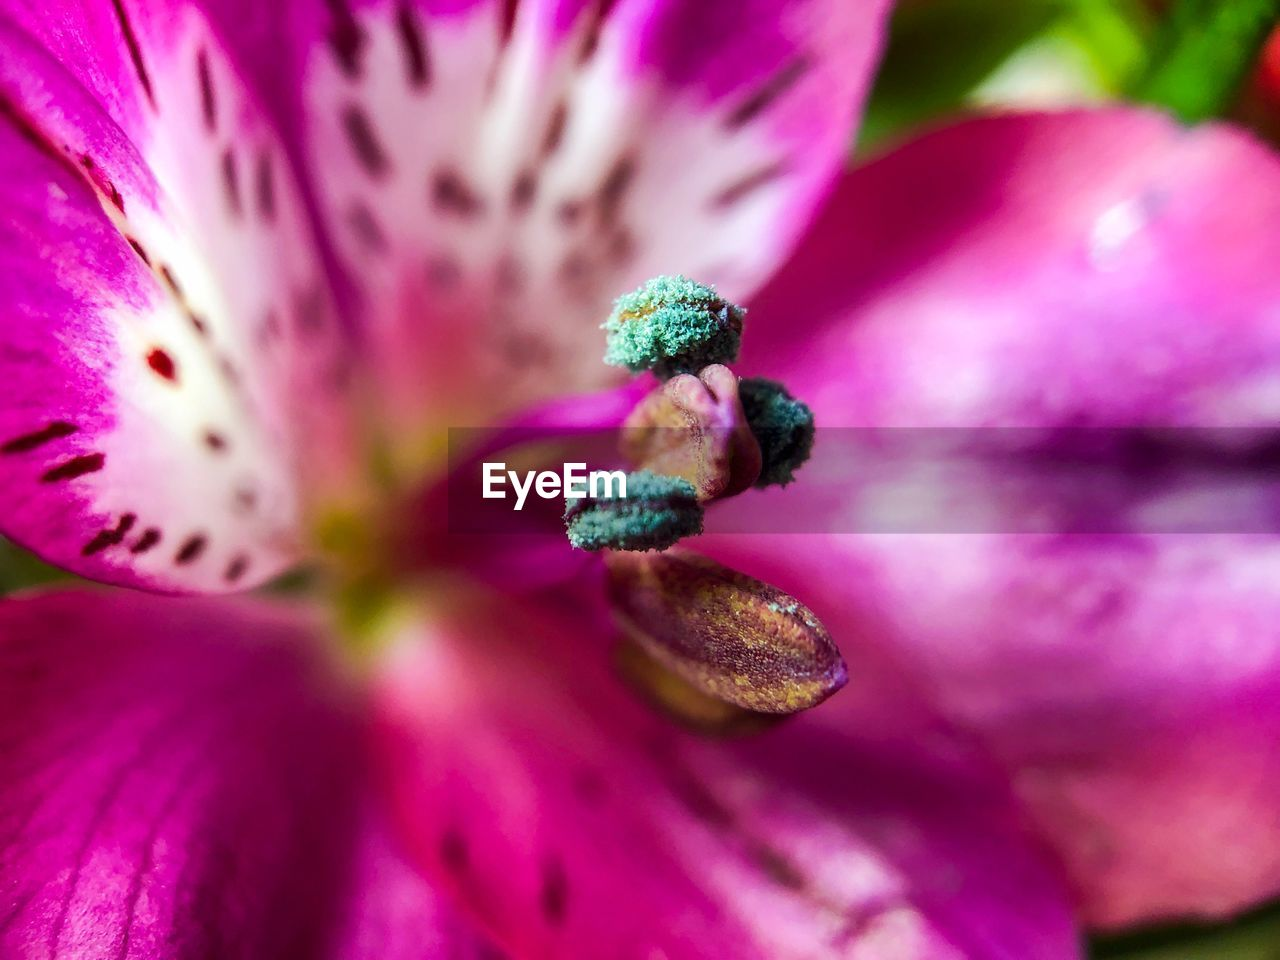 flower, flowering plant, close-up, growth, beauty in nature, purple, freshness, petal, pink color, selective focus, plant, fragility, inflorescence, vulnerability, flower head, no people, pollen, day, nature, outdoors